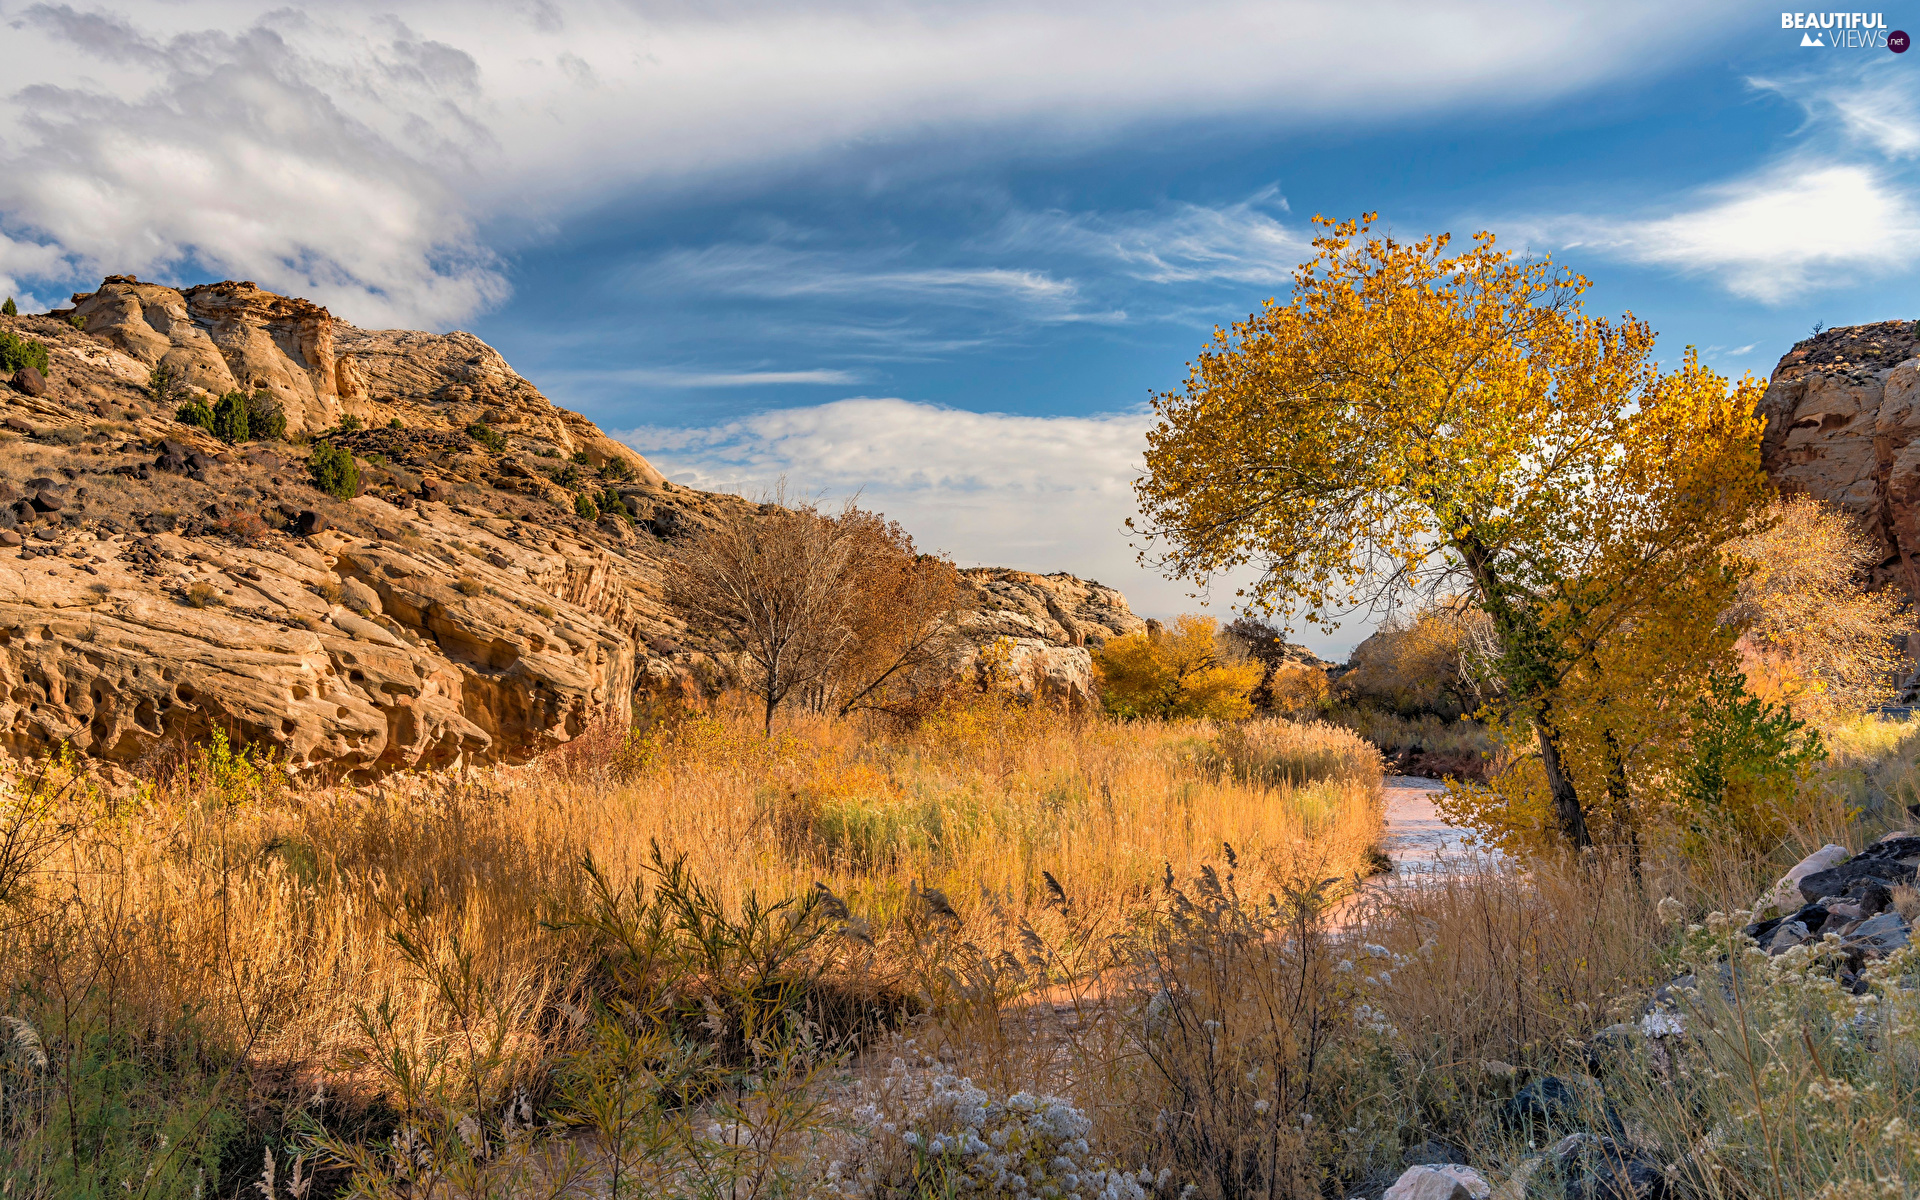 River, autumn, trees, viewes, Utah State, The United States, rocks, Capitol Reef National Park, grass